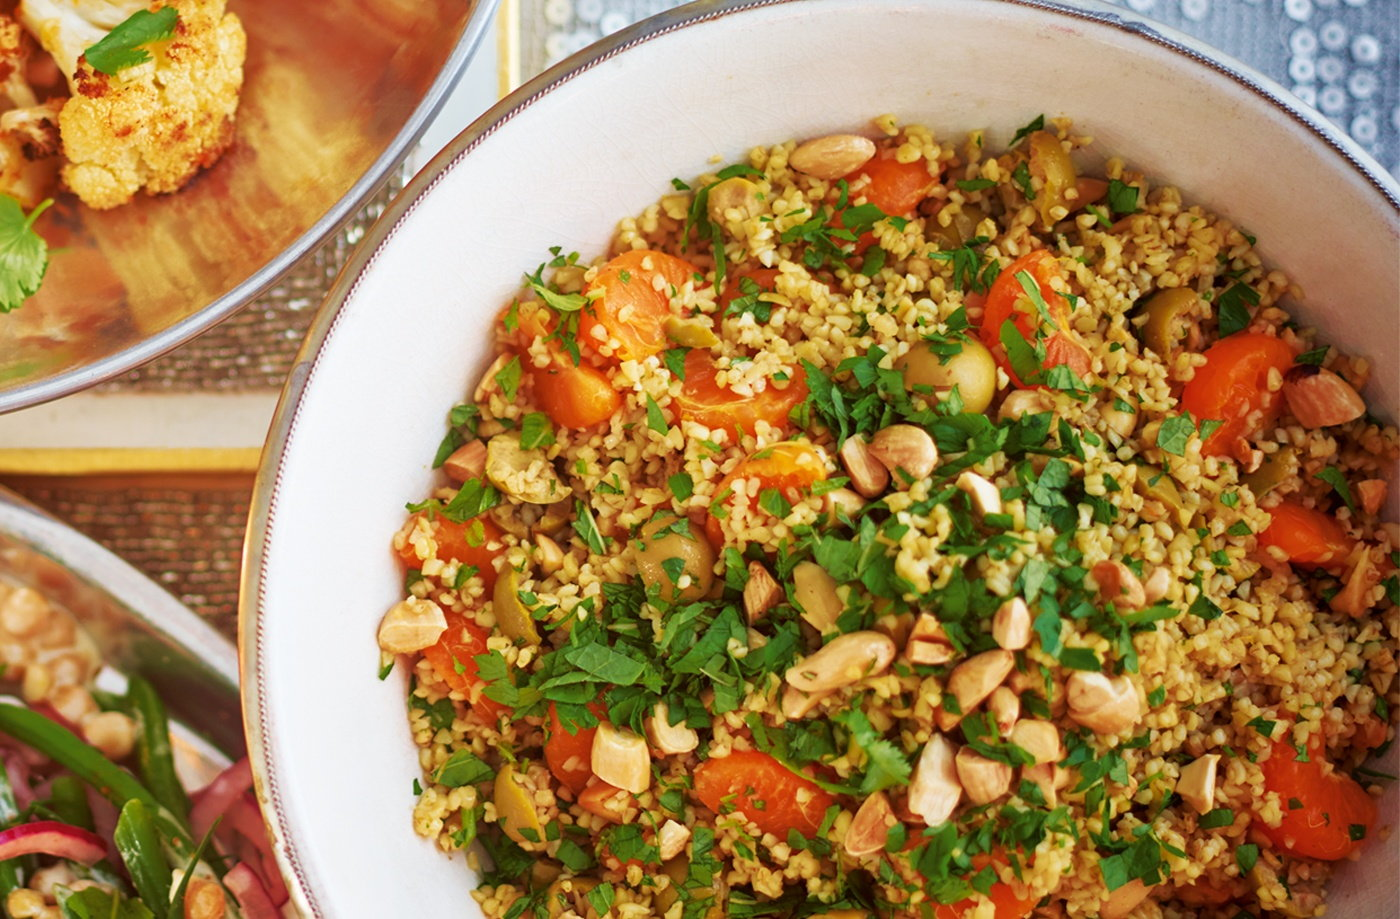 Bulgur wheat, almond and clementine salad recipe